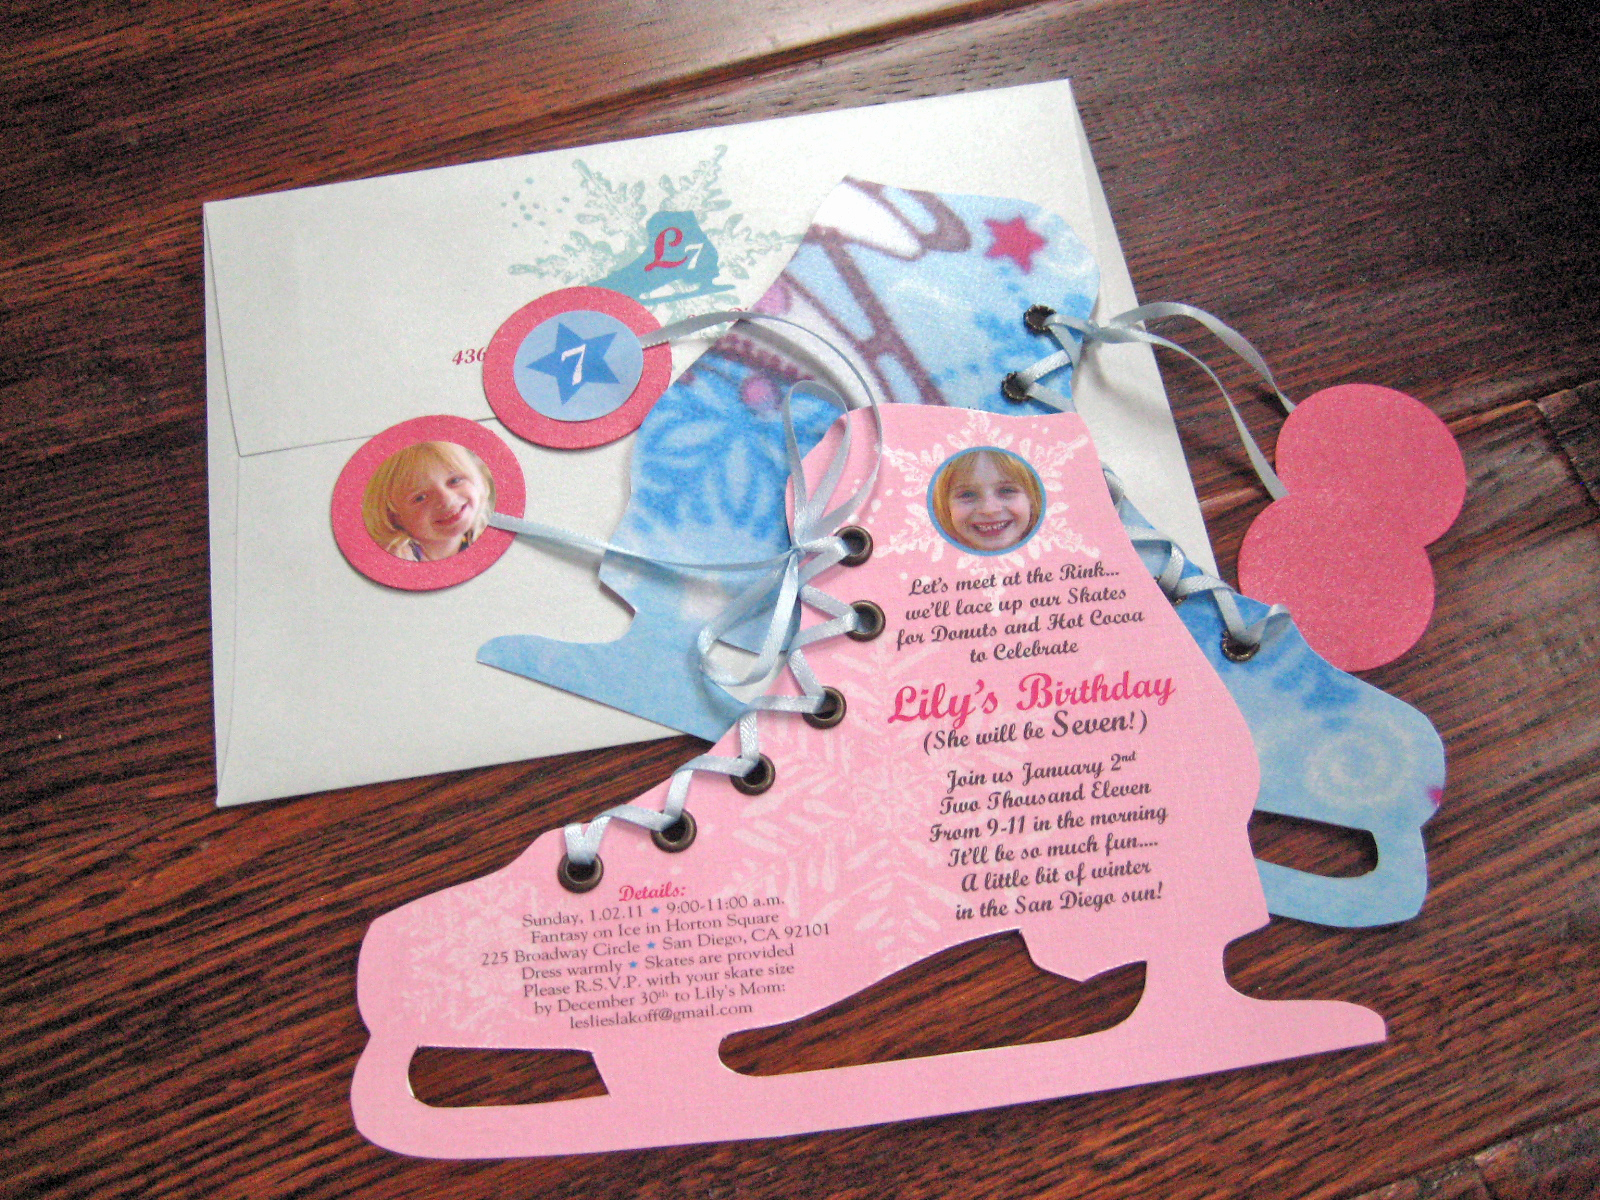 Ice Skate Party Invitation Fresh Season's Greetings – Eitak's Custom Cards 2010